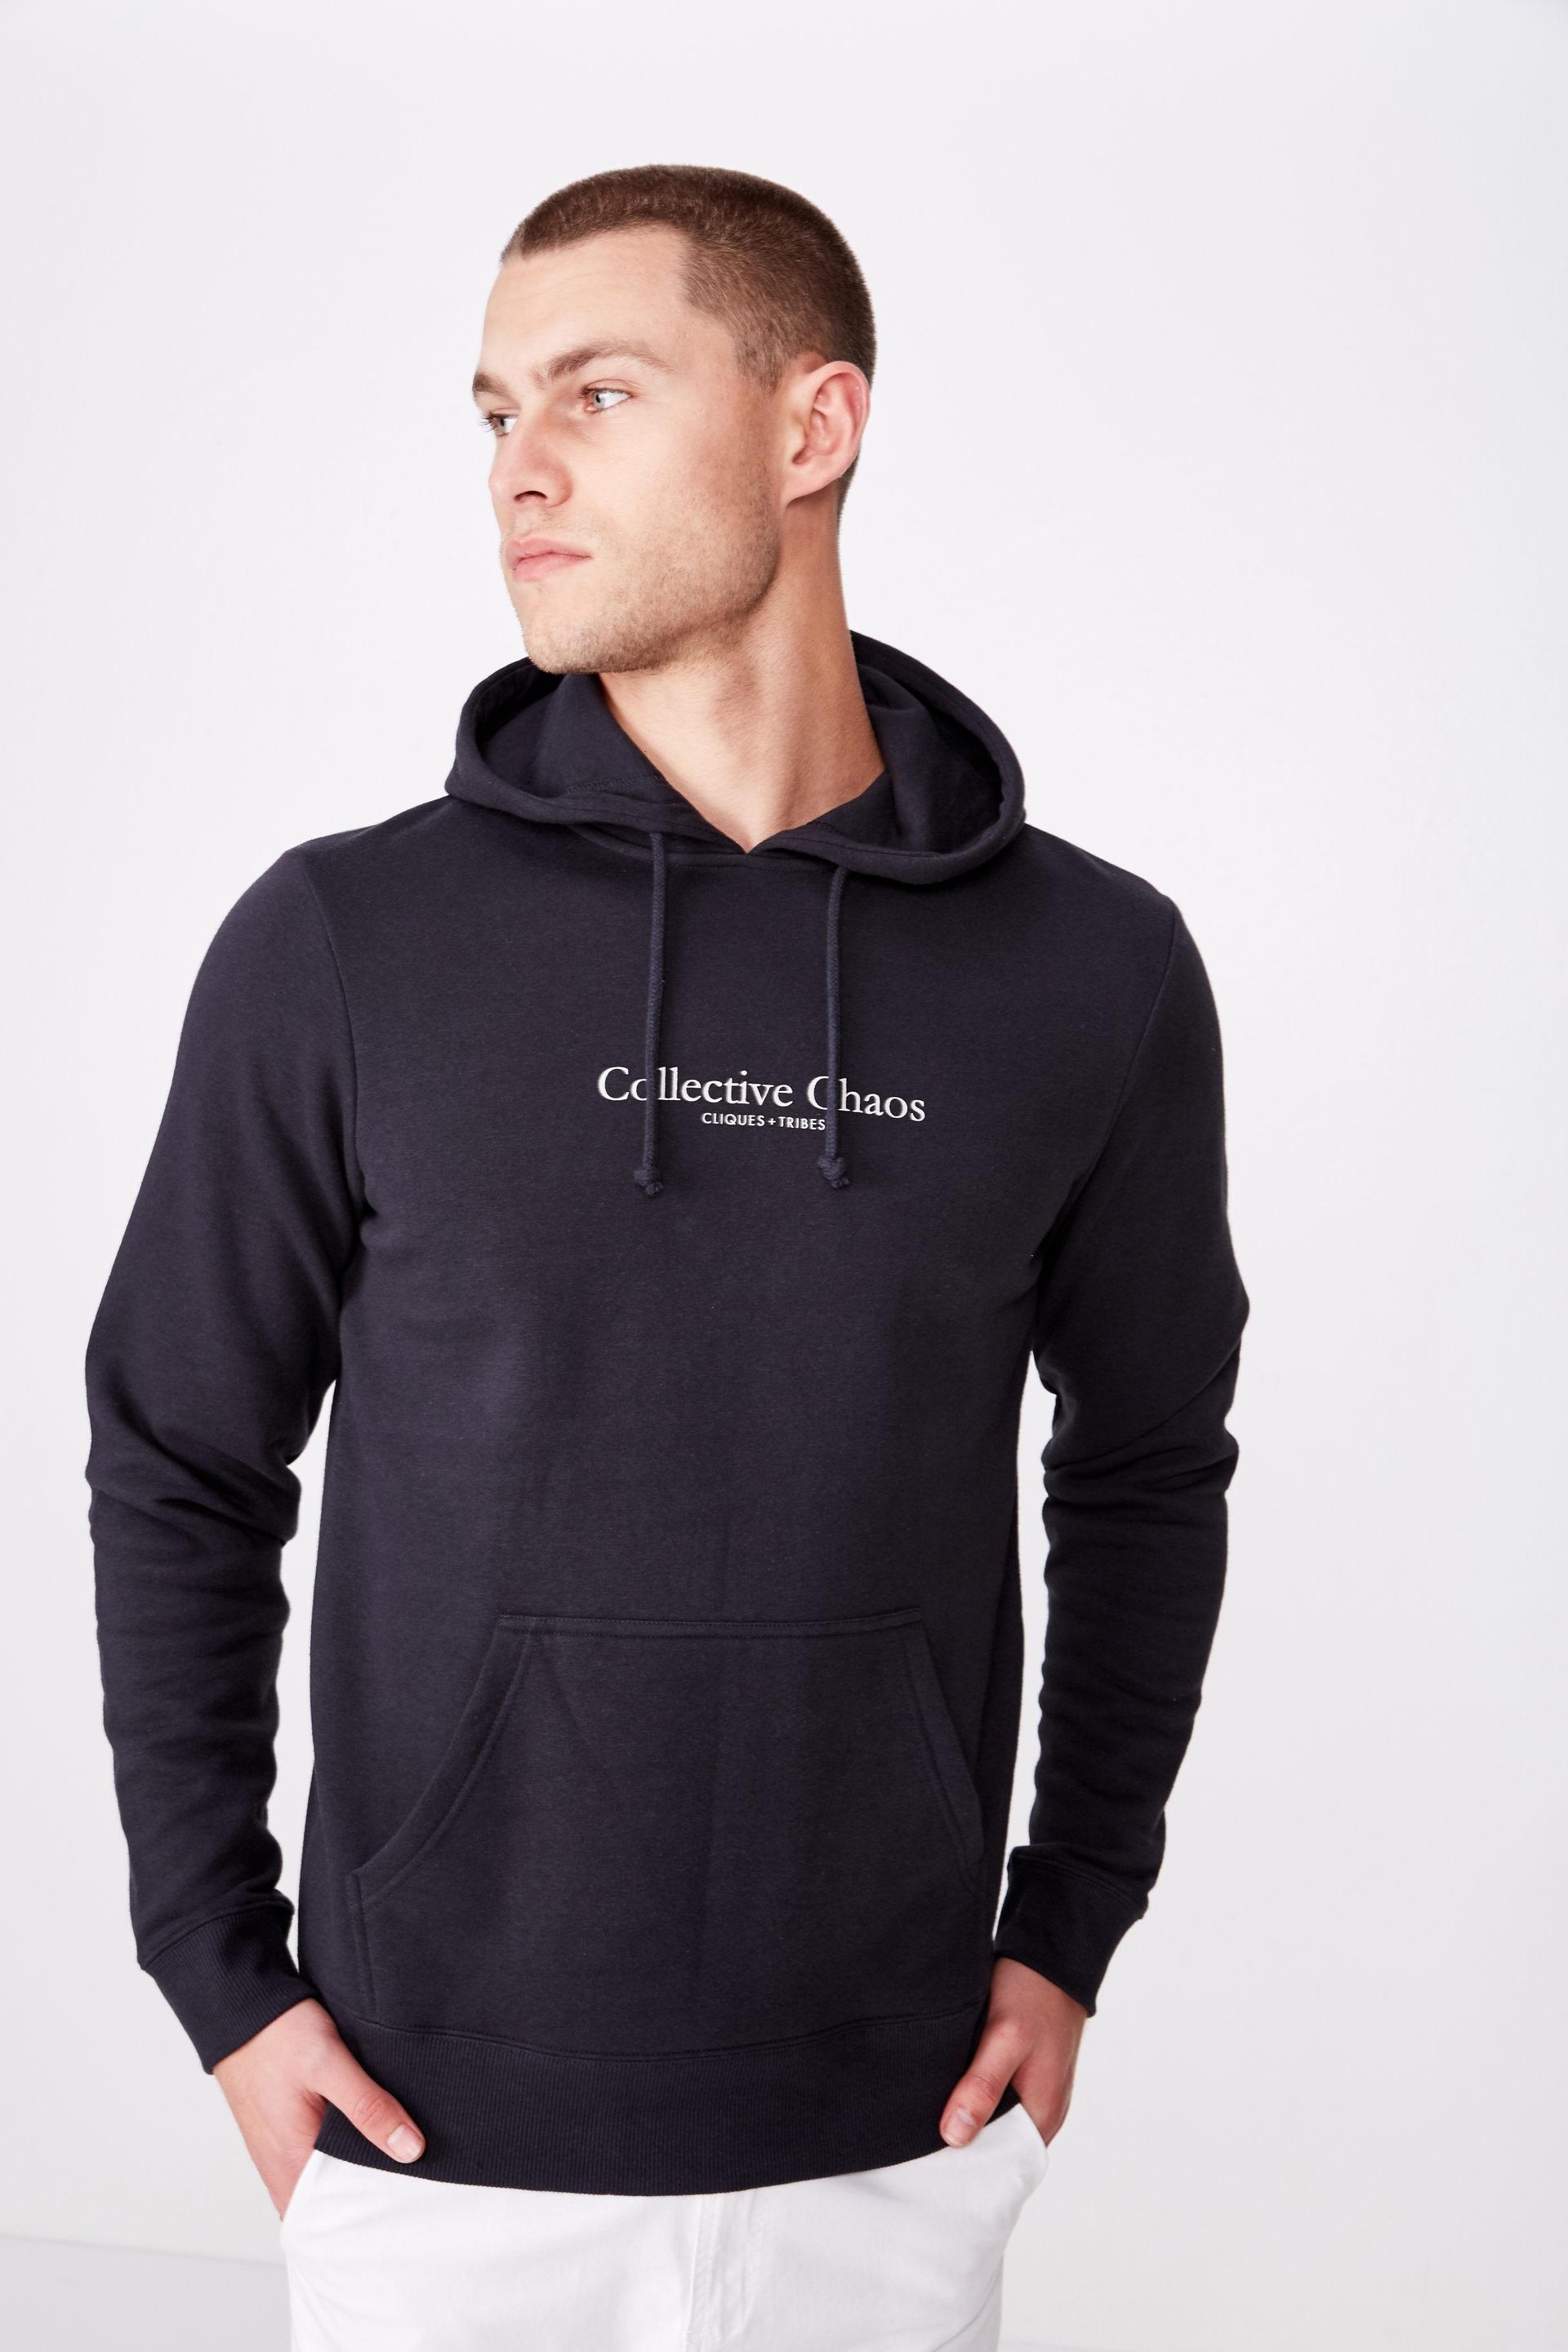 Cotton On Men - Fleece Pullover 2 - Washed black/collective chaos